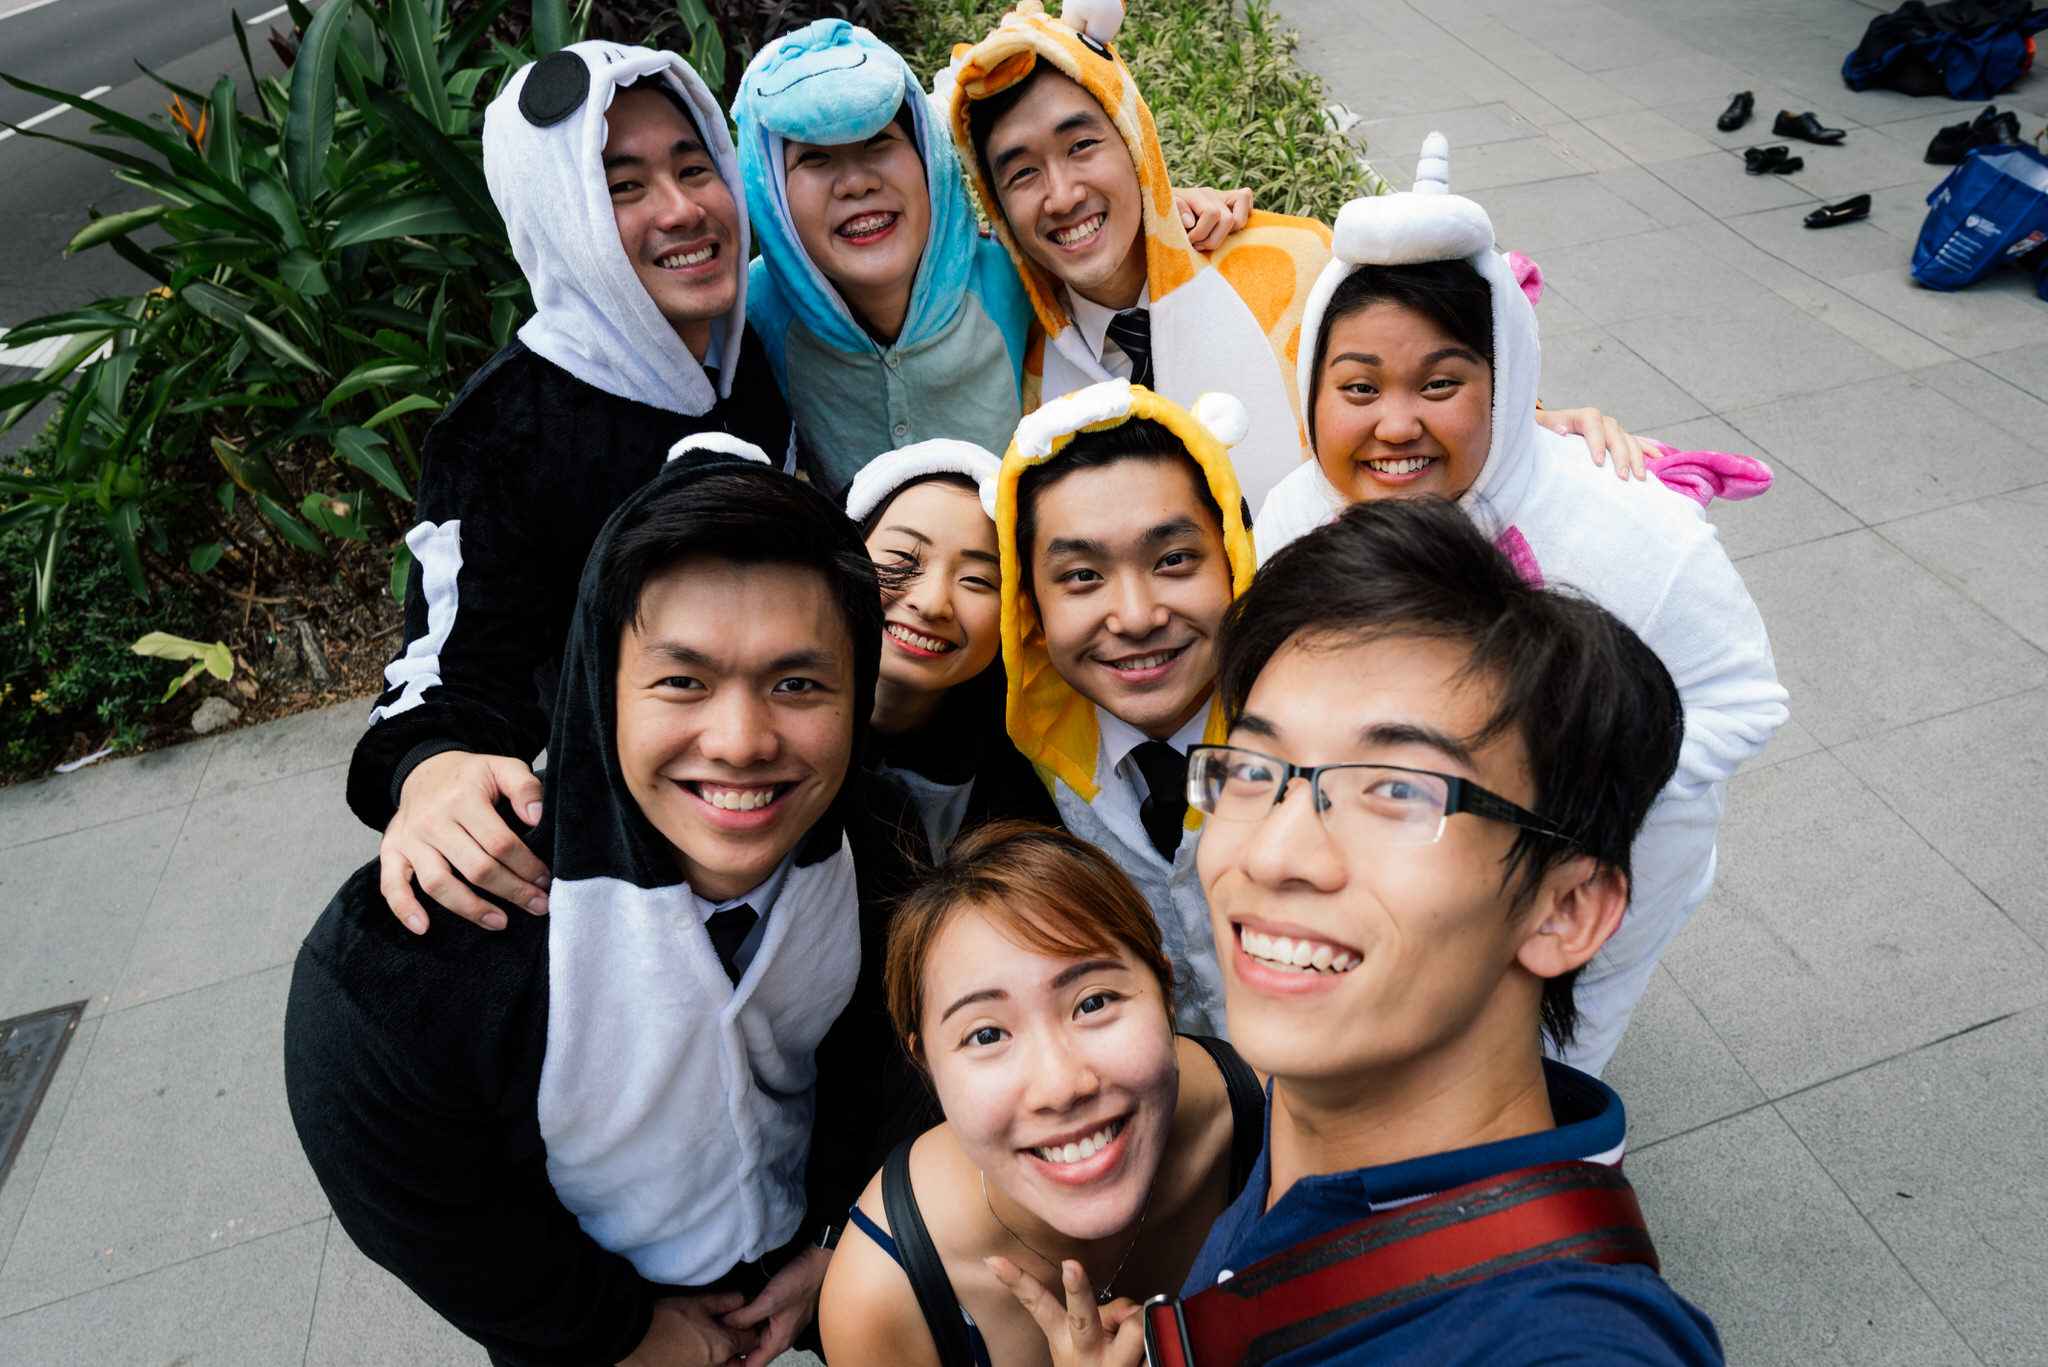 And not forgetting our usual wefie with the adorable people in onesies! =)